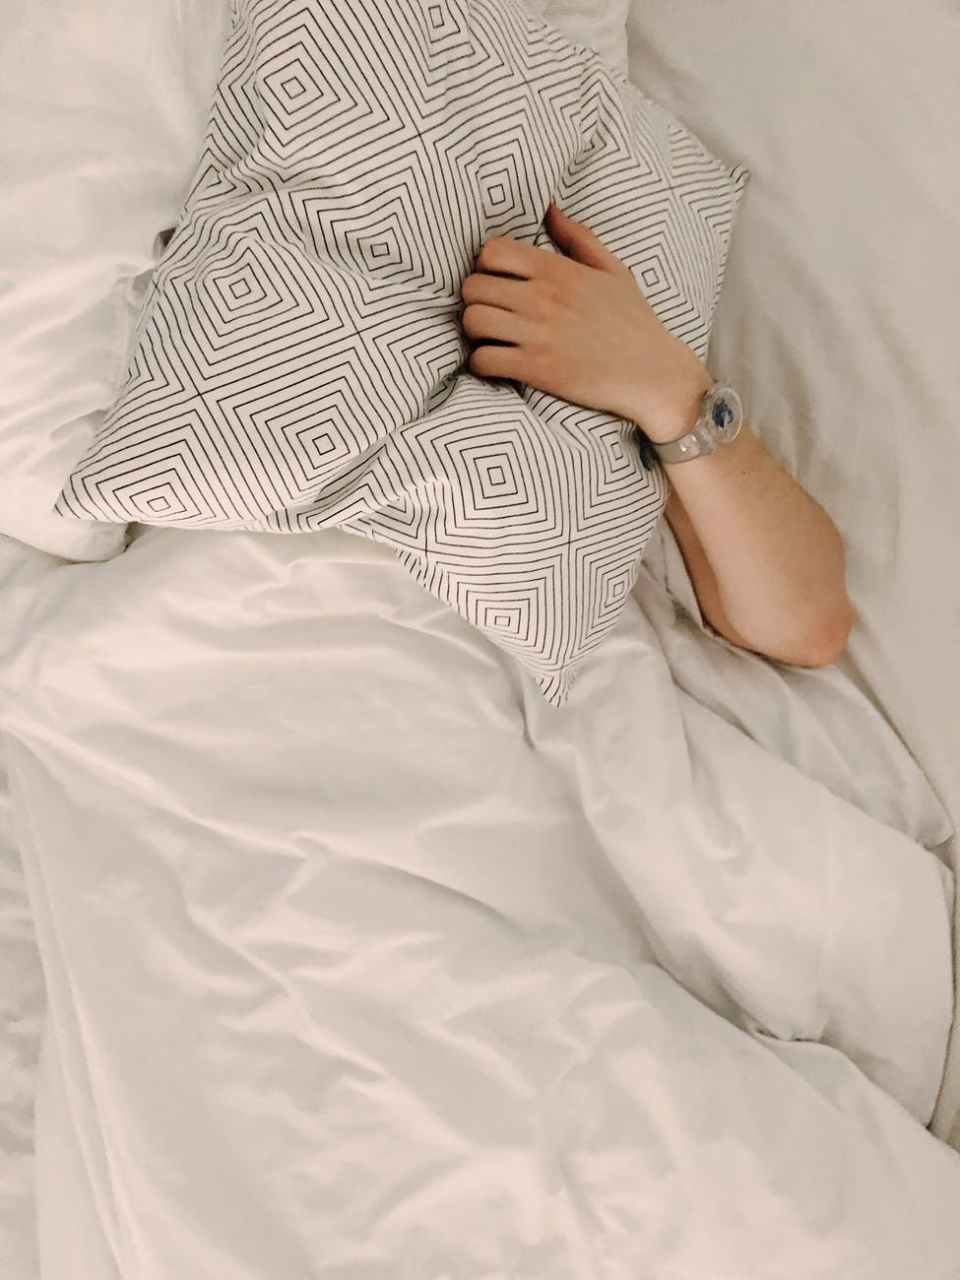 The Link Between Poor Sleep and Weight Gain – 5 Things To Know